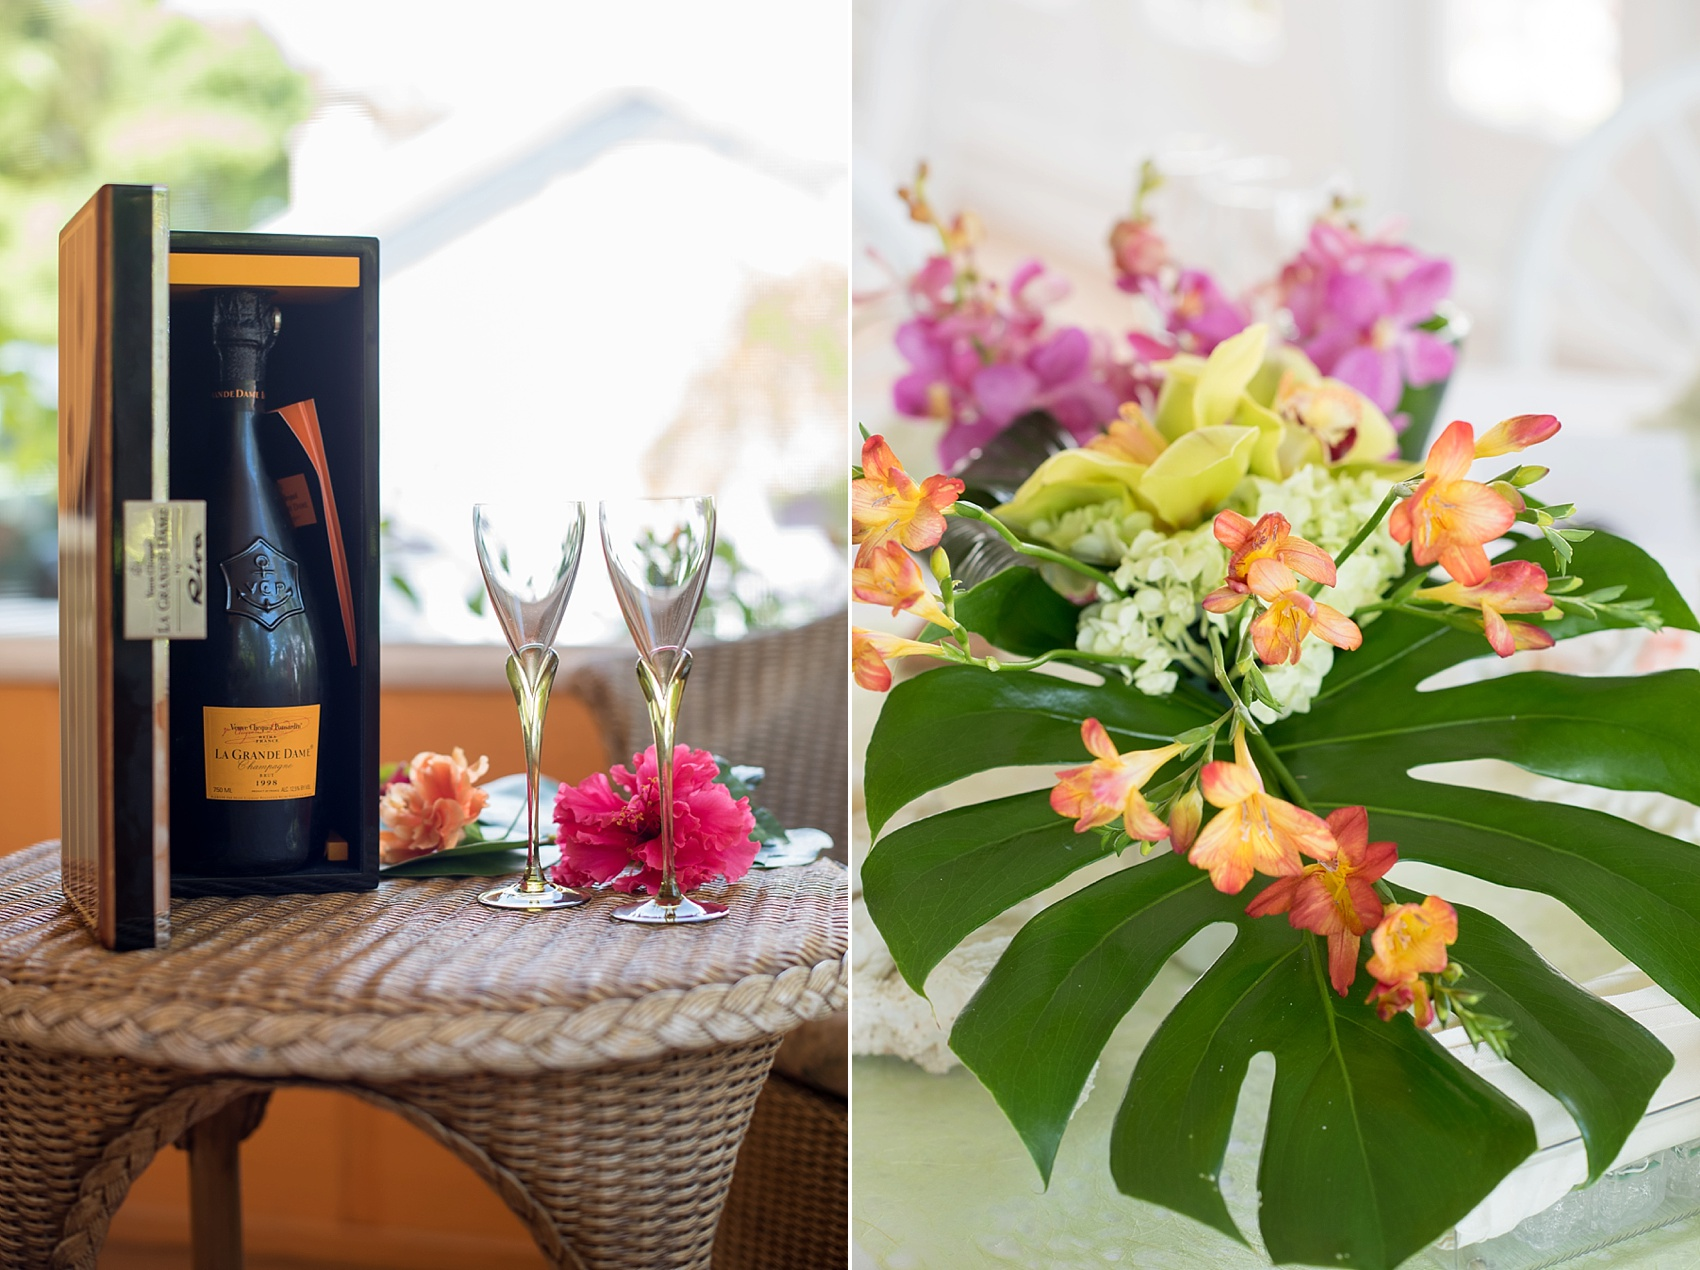 Captiva Island small wedding at Tween Waters Inn. Photos by Mikkel Paige Photography.